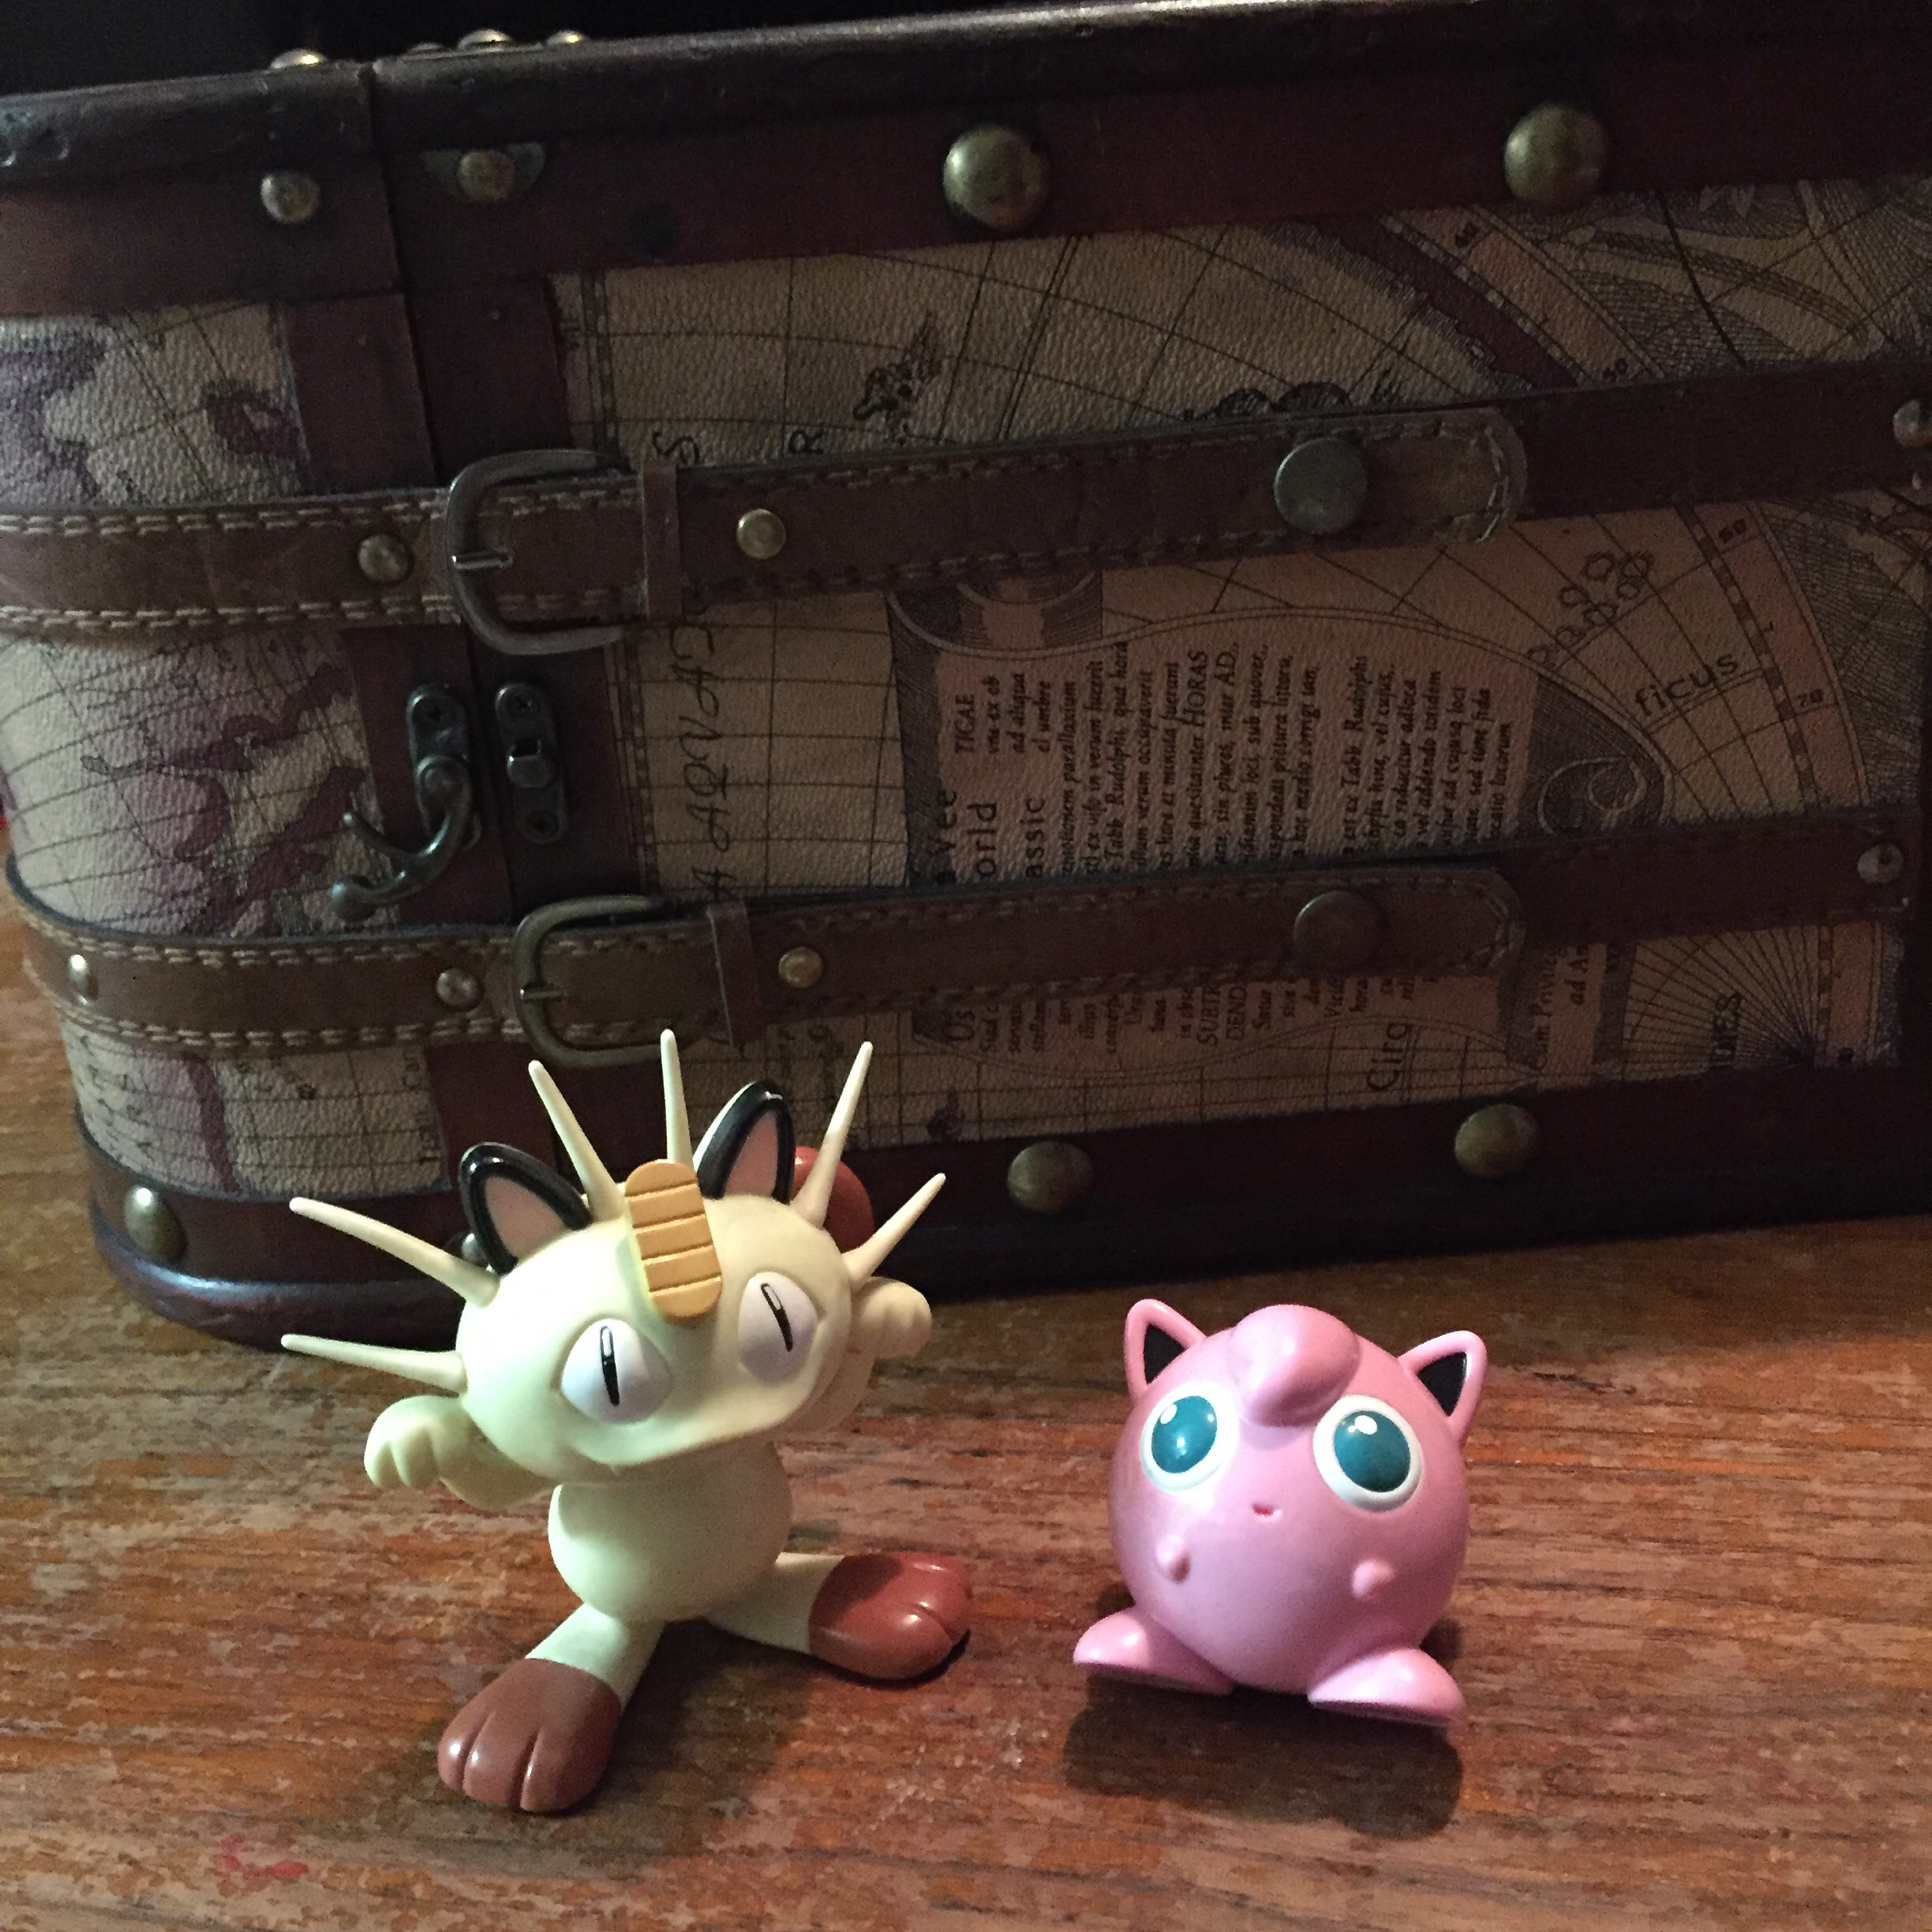 Deluxe Japanese screaming Meowth and scotch tape dispenser Jigglypuff were in the treasure chest